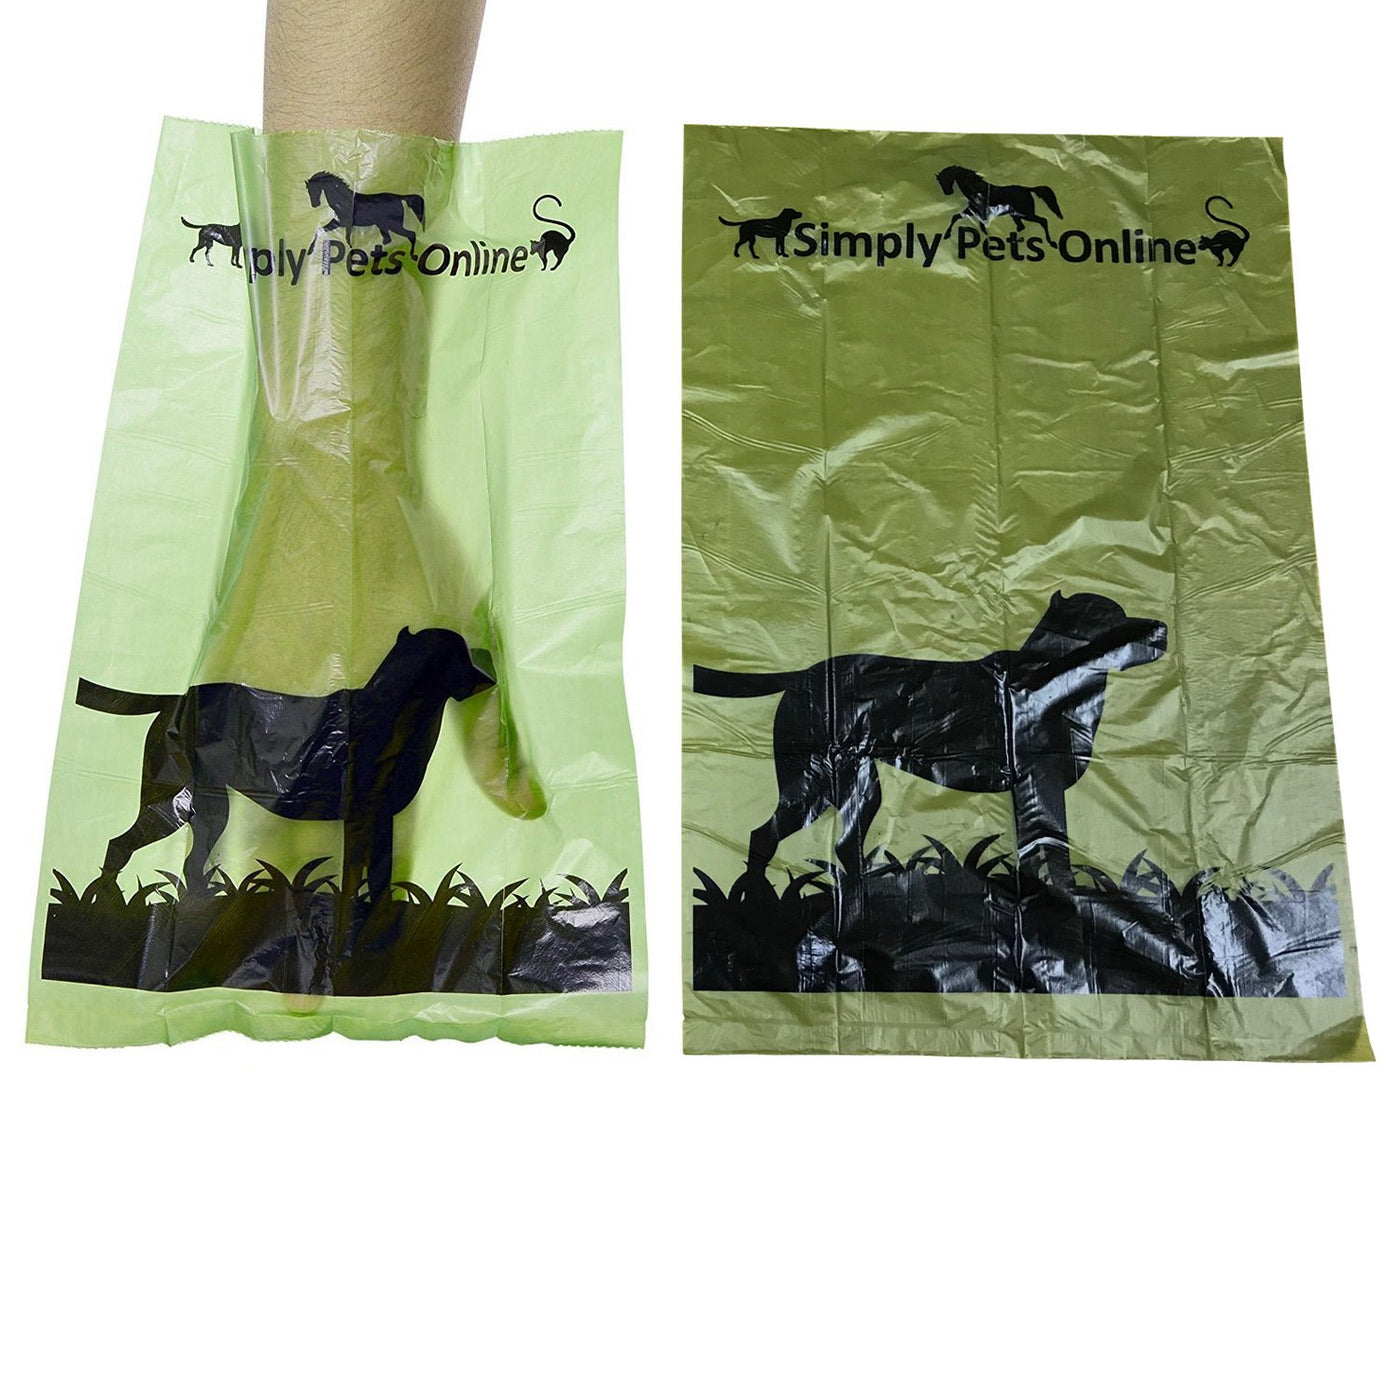 Simply Pets Online Biodegradable 180 Dog Poo Bags 12 Rolls with 15 Poop Bags Per Roll. Designed By 2 Vets These 100% recyclable Dog Dirt Bags Are Eco-friendly